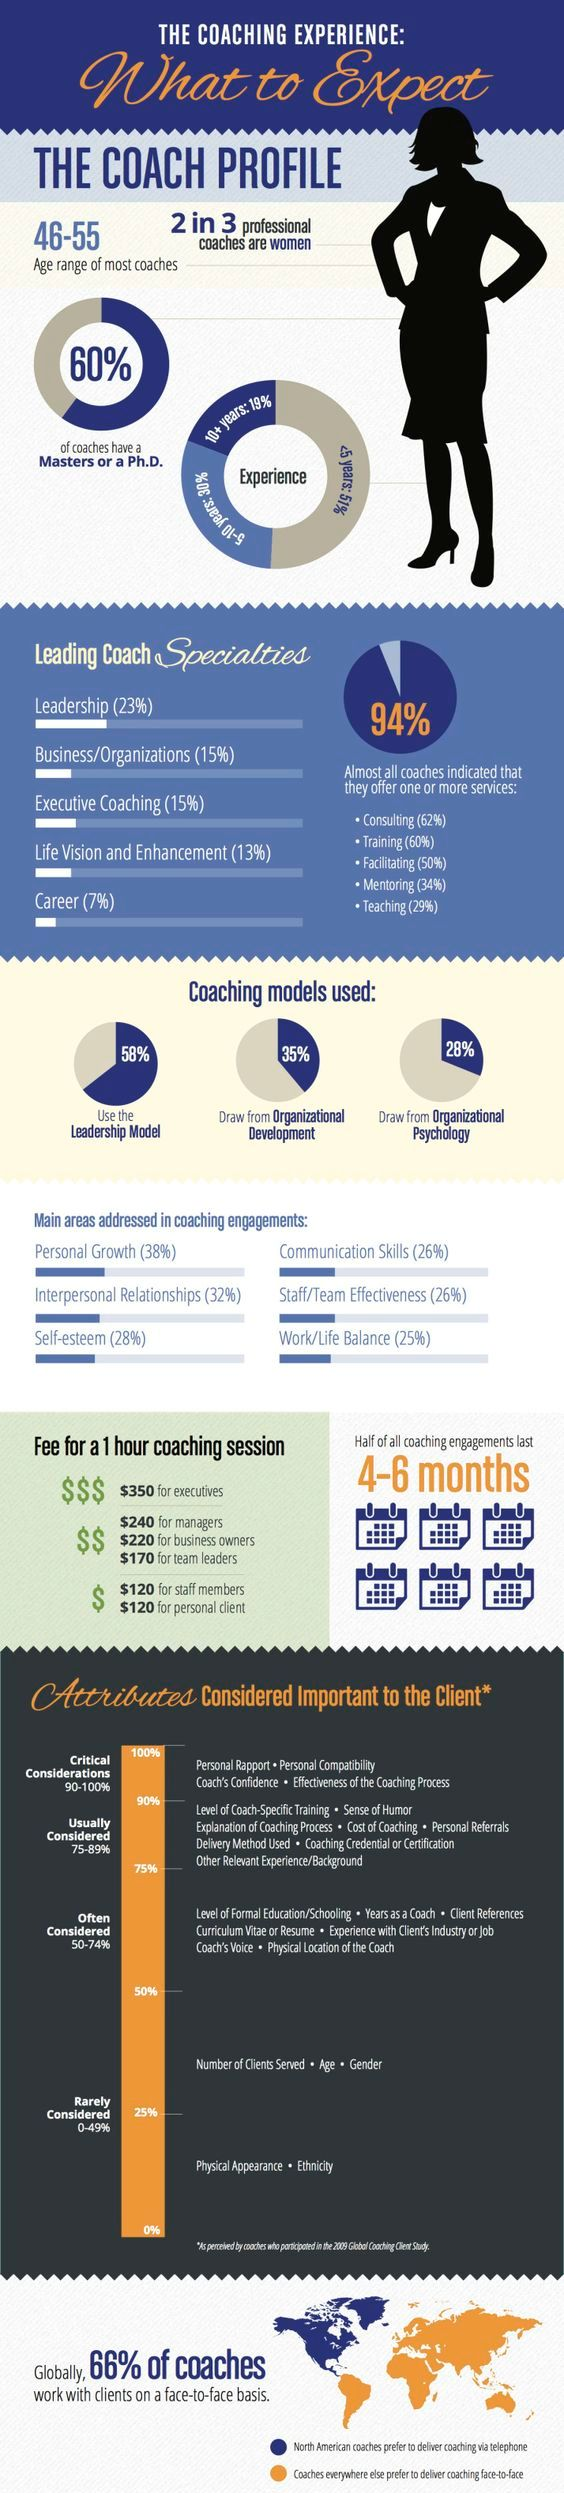 life coaching what to expect infographic